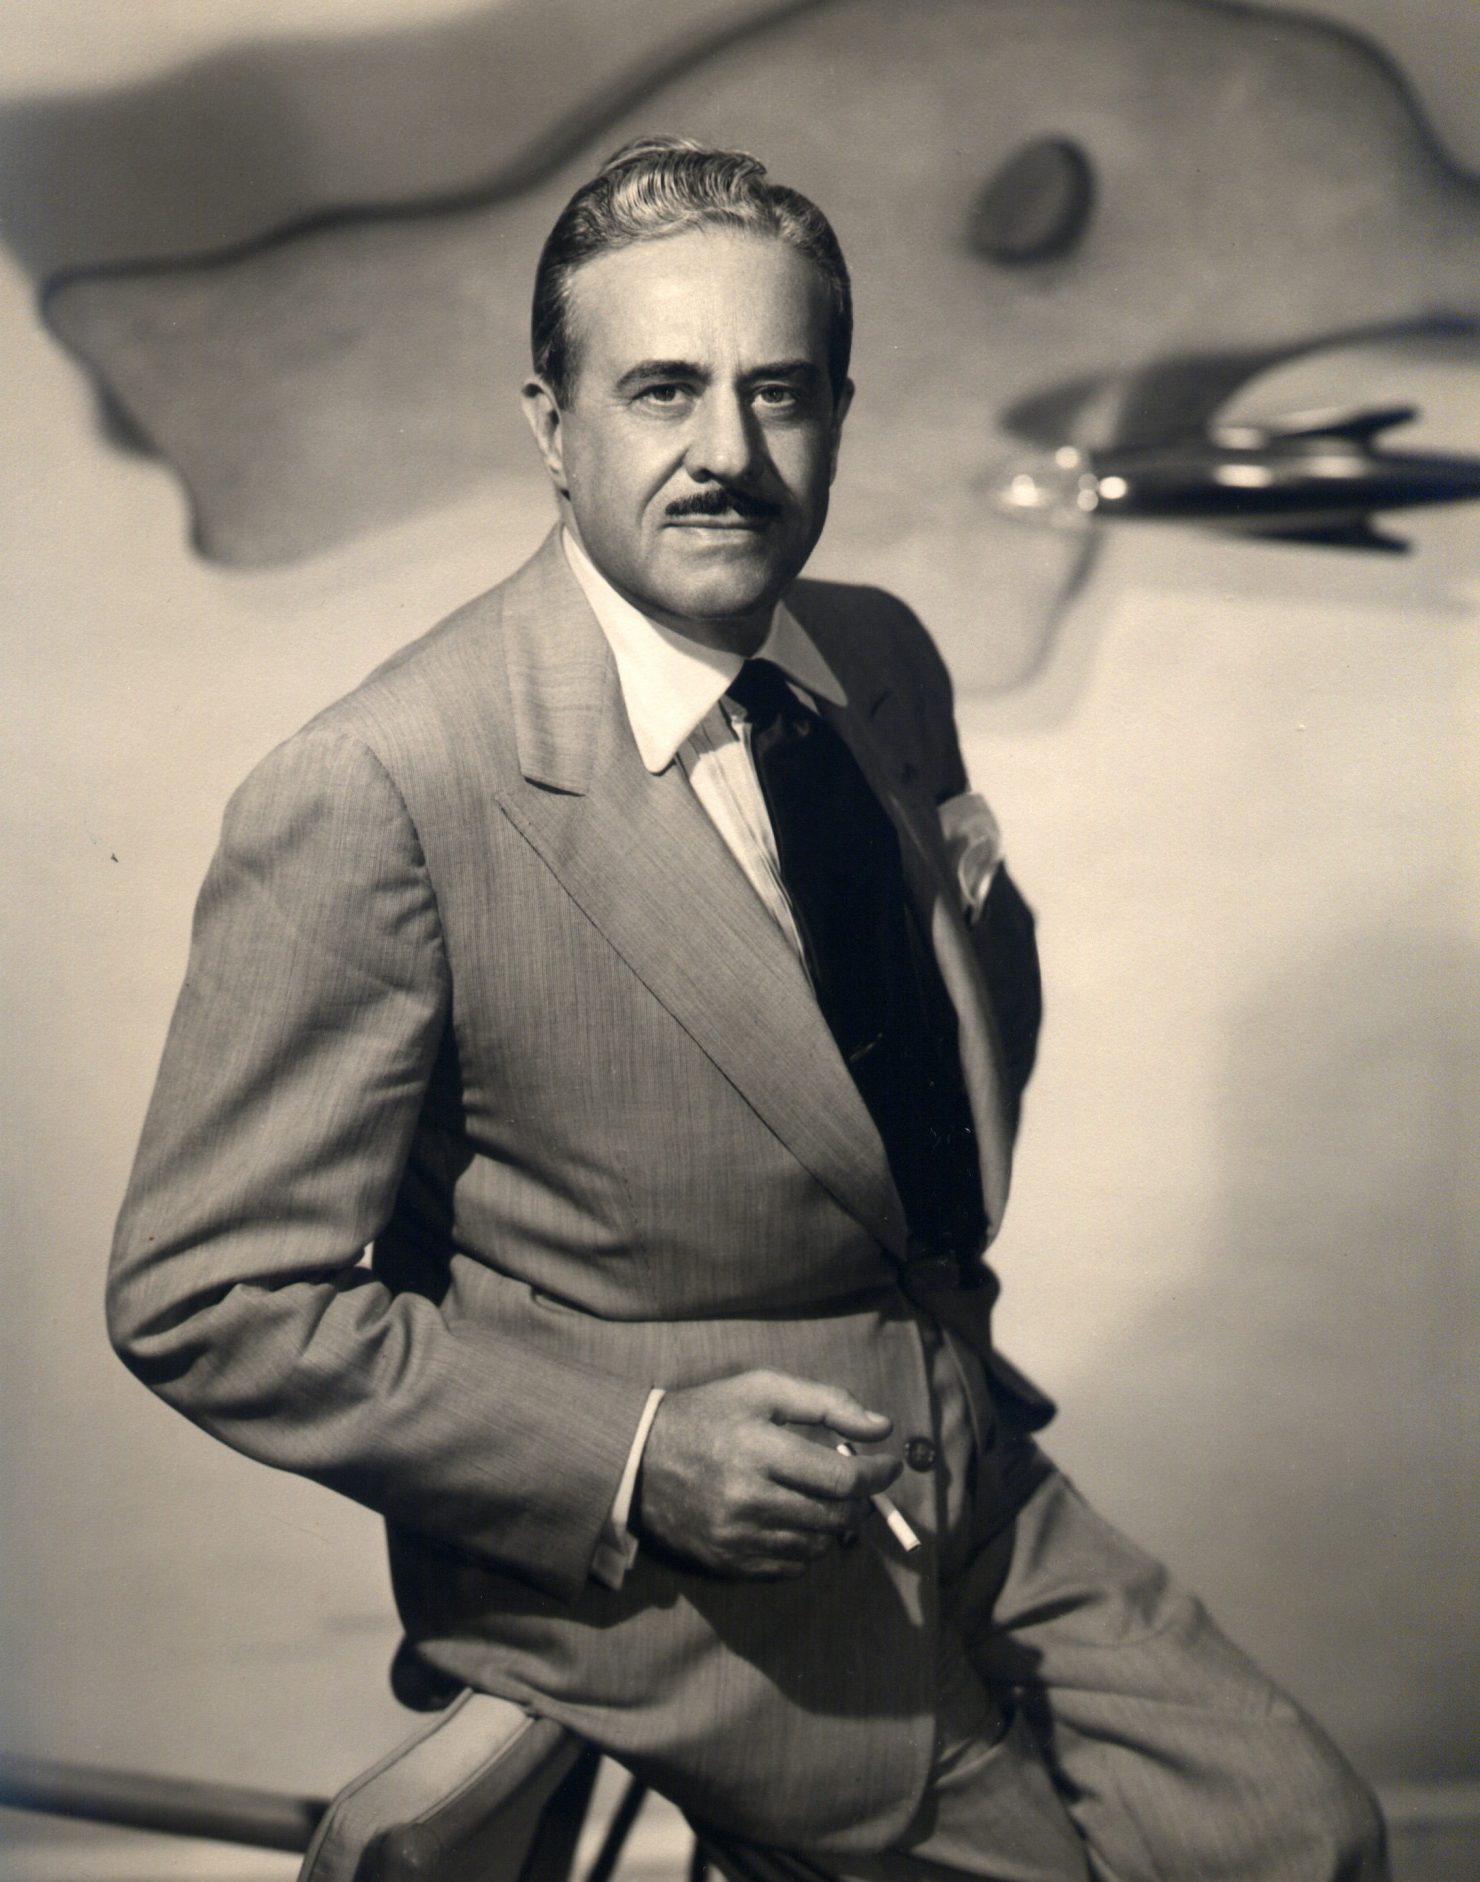 Raymond Loewy 1 1480x1882 - Film - Raymond Loewy: Father of Industrial Design